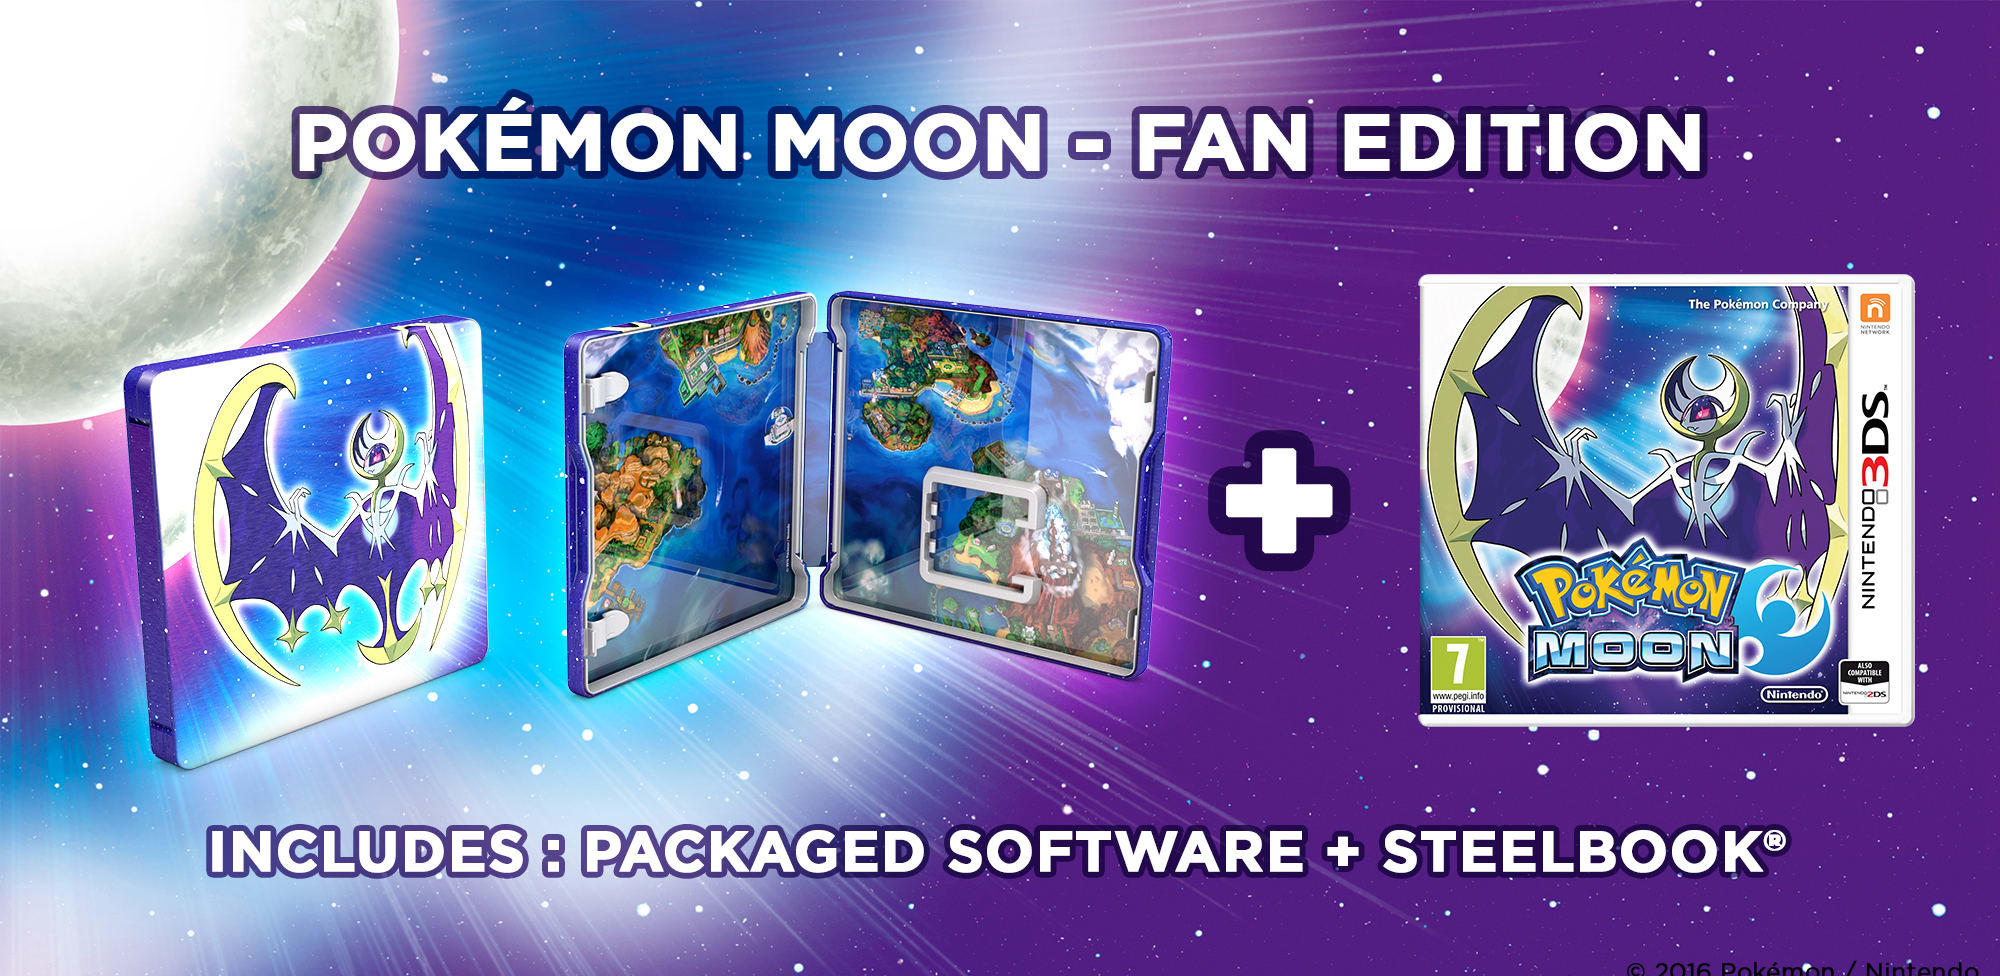 http://img.game.co.uk/images/content/SpecialEditions/Pokémon%20Moon%20SteelBook%20Announcement.jpg